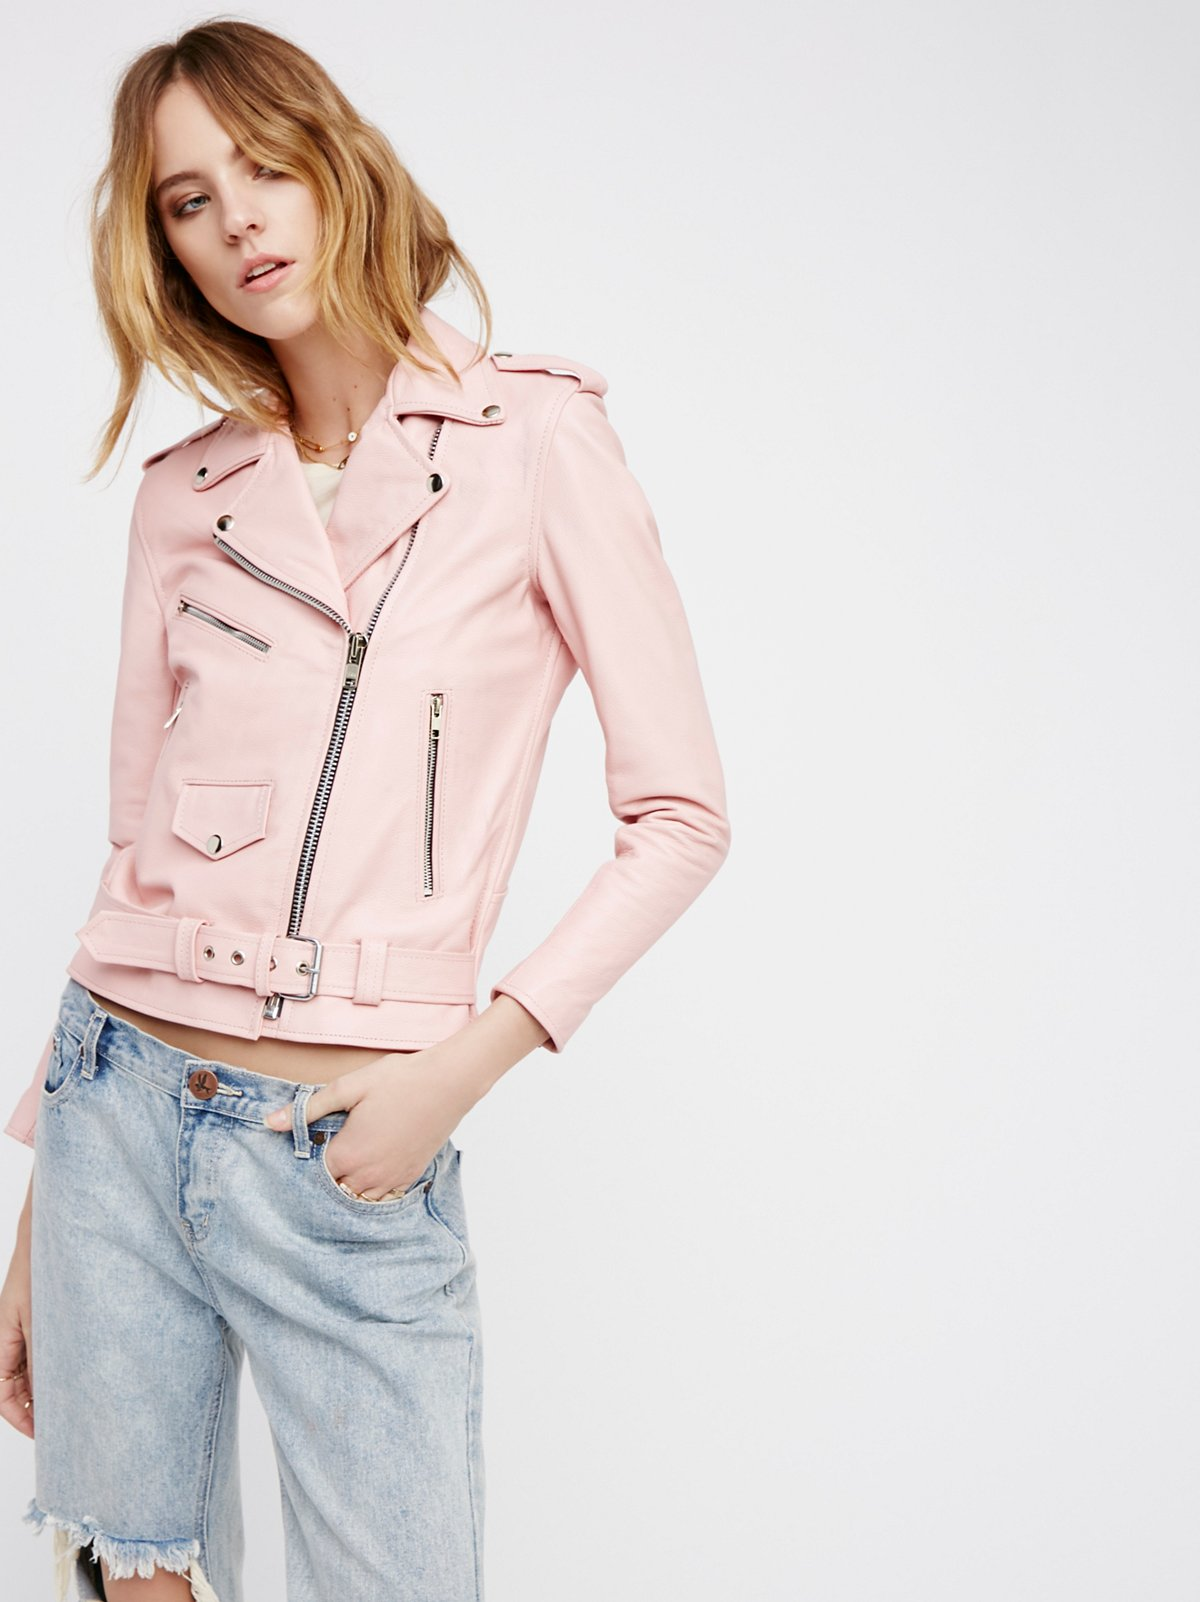 Easy Rider Pink Leather Jacket